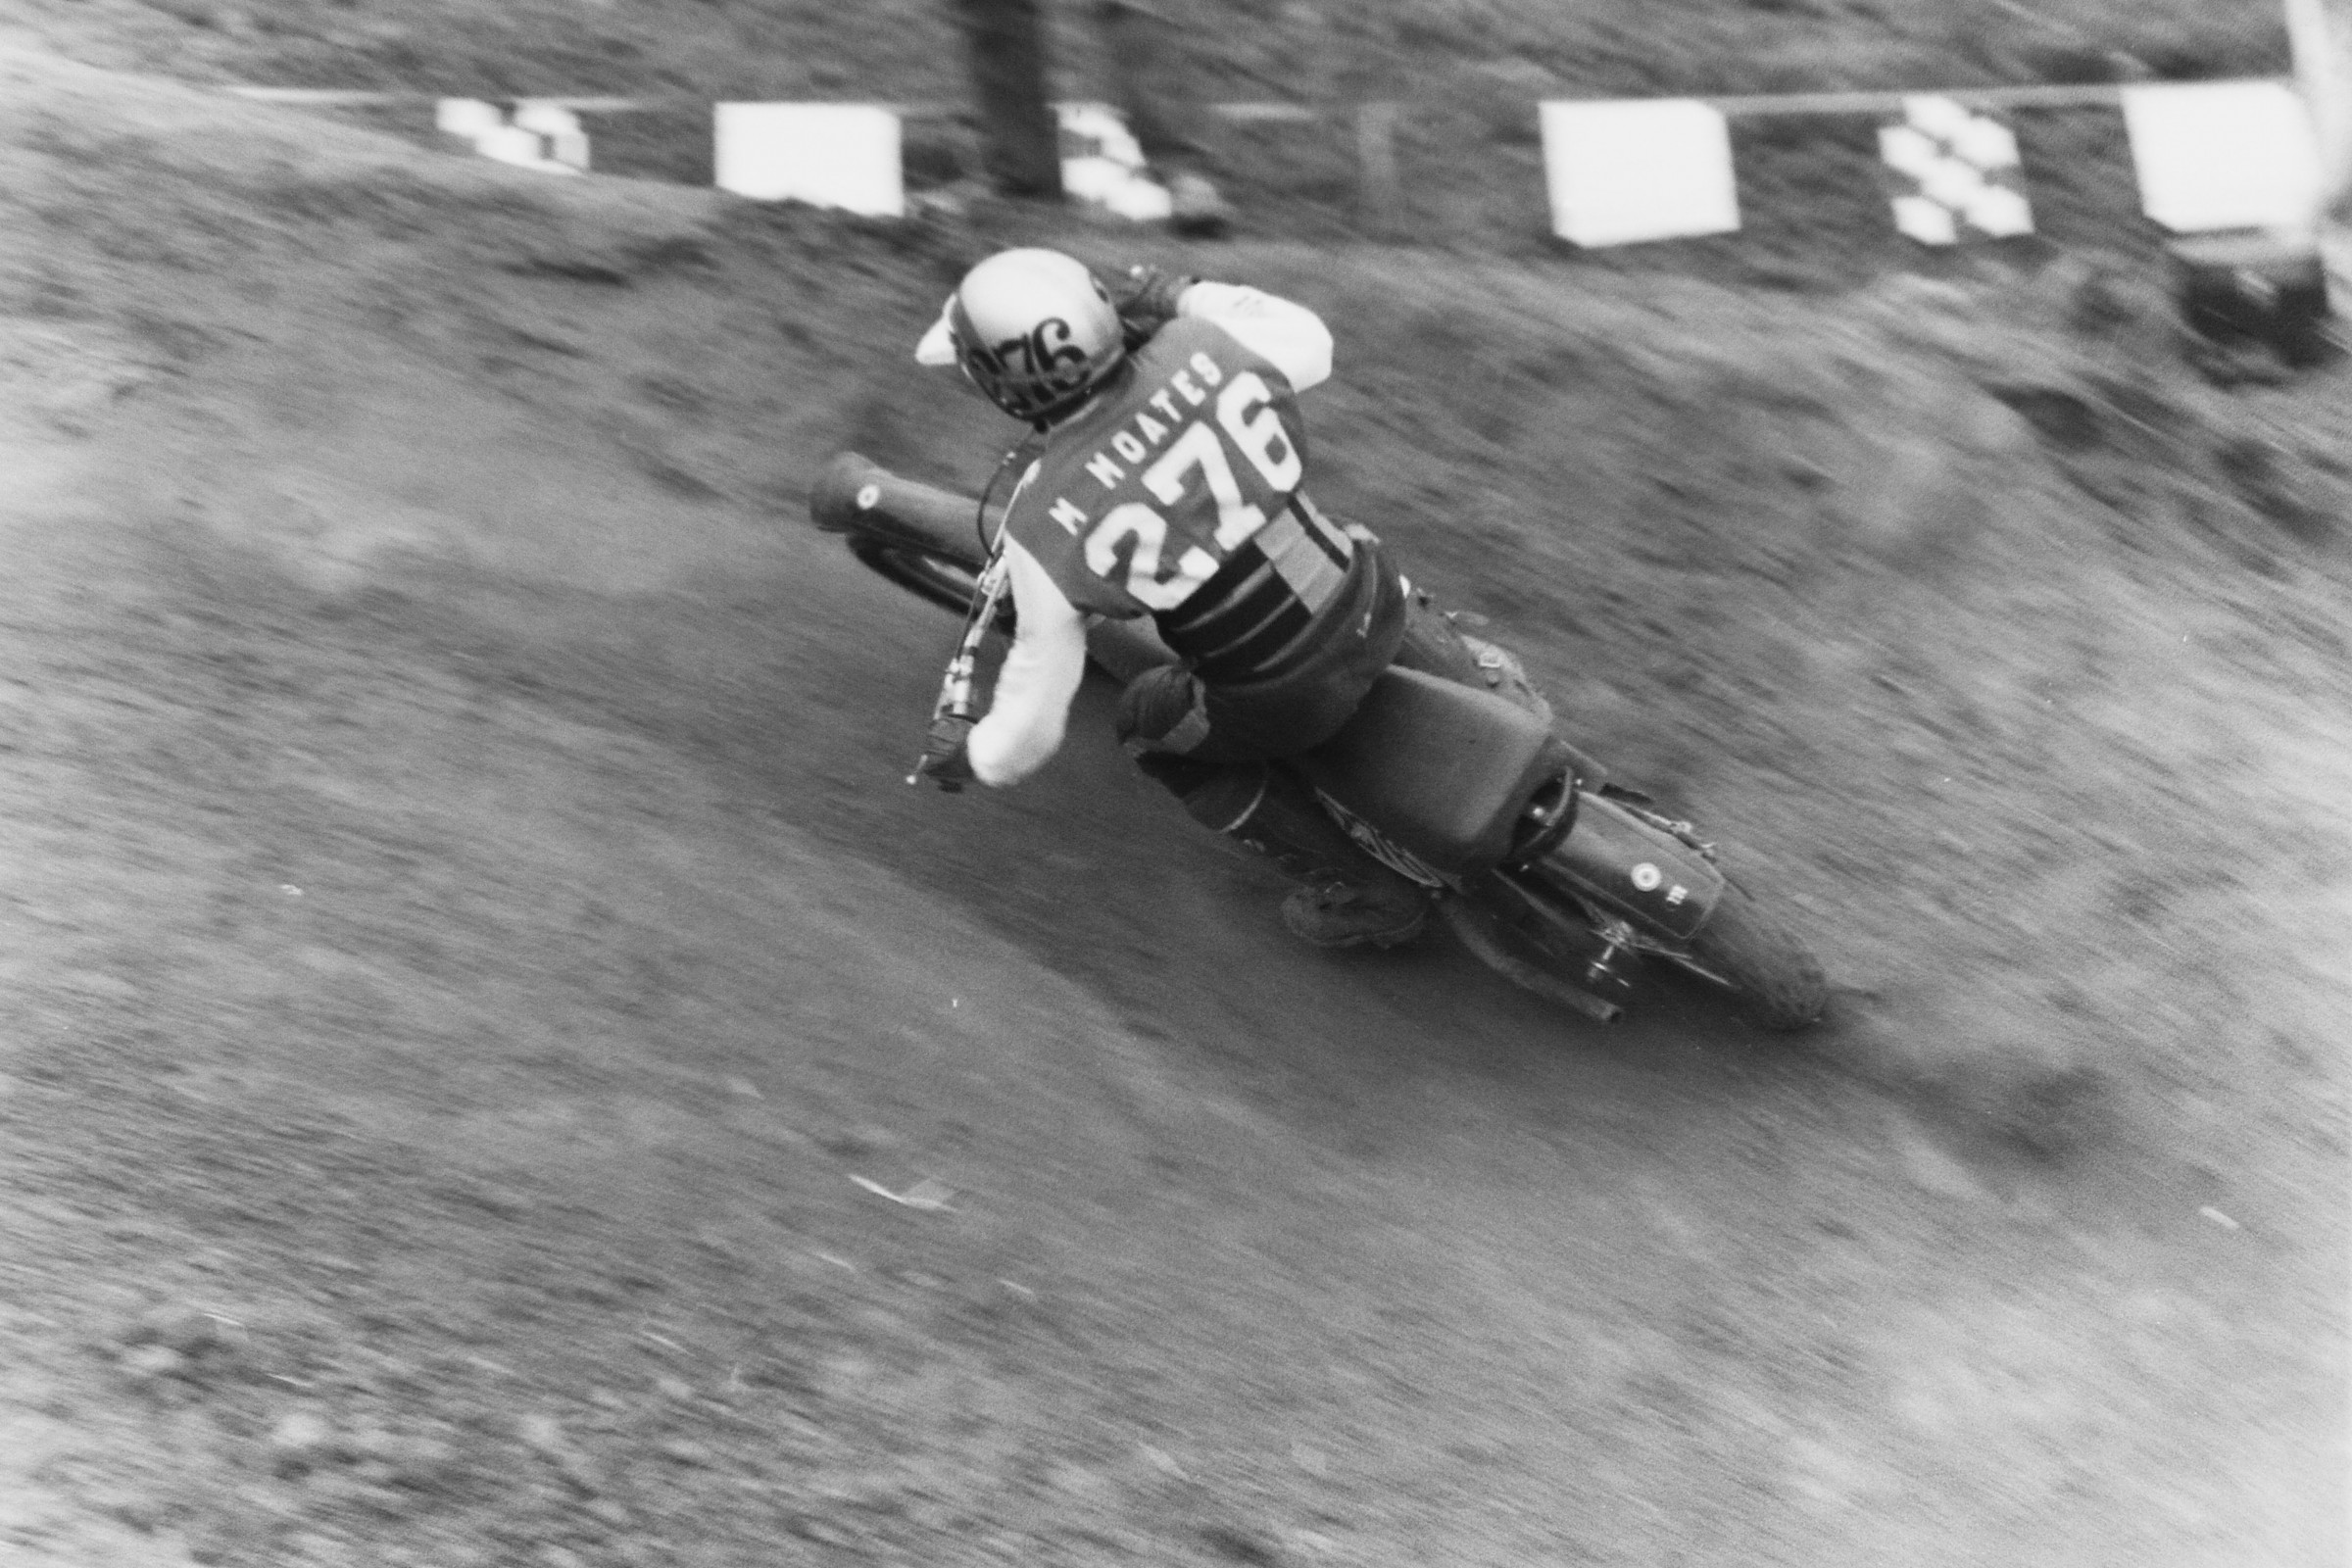 Check out this rare photo of a young Marty Moates in the 1974 250cc support class. Moates will certainly appear later in this countdown after a more memorable Carlsbad outing.